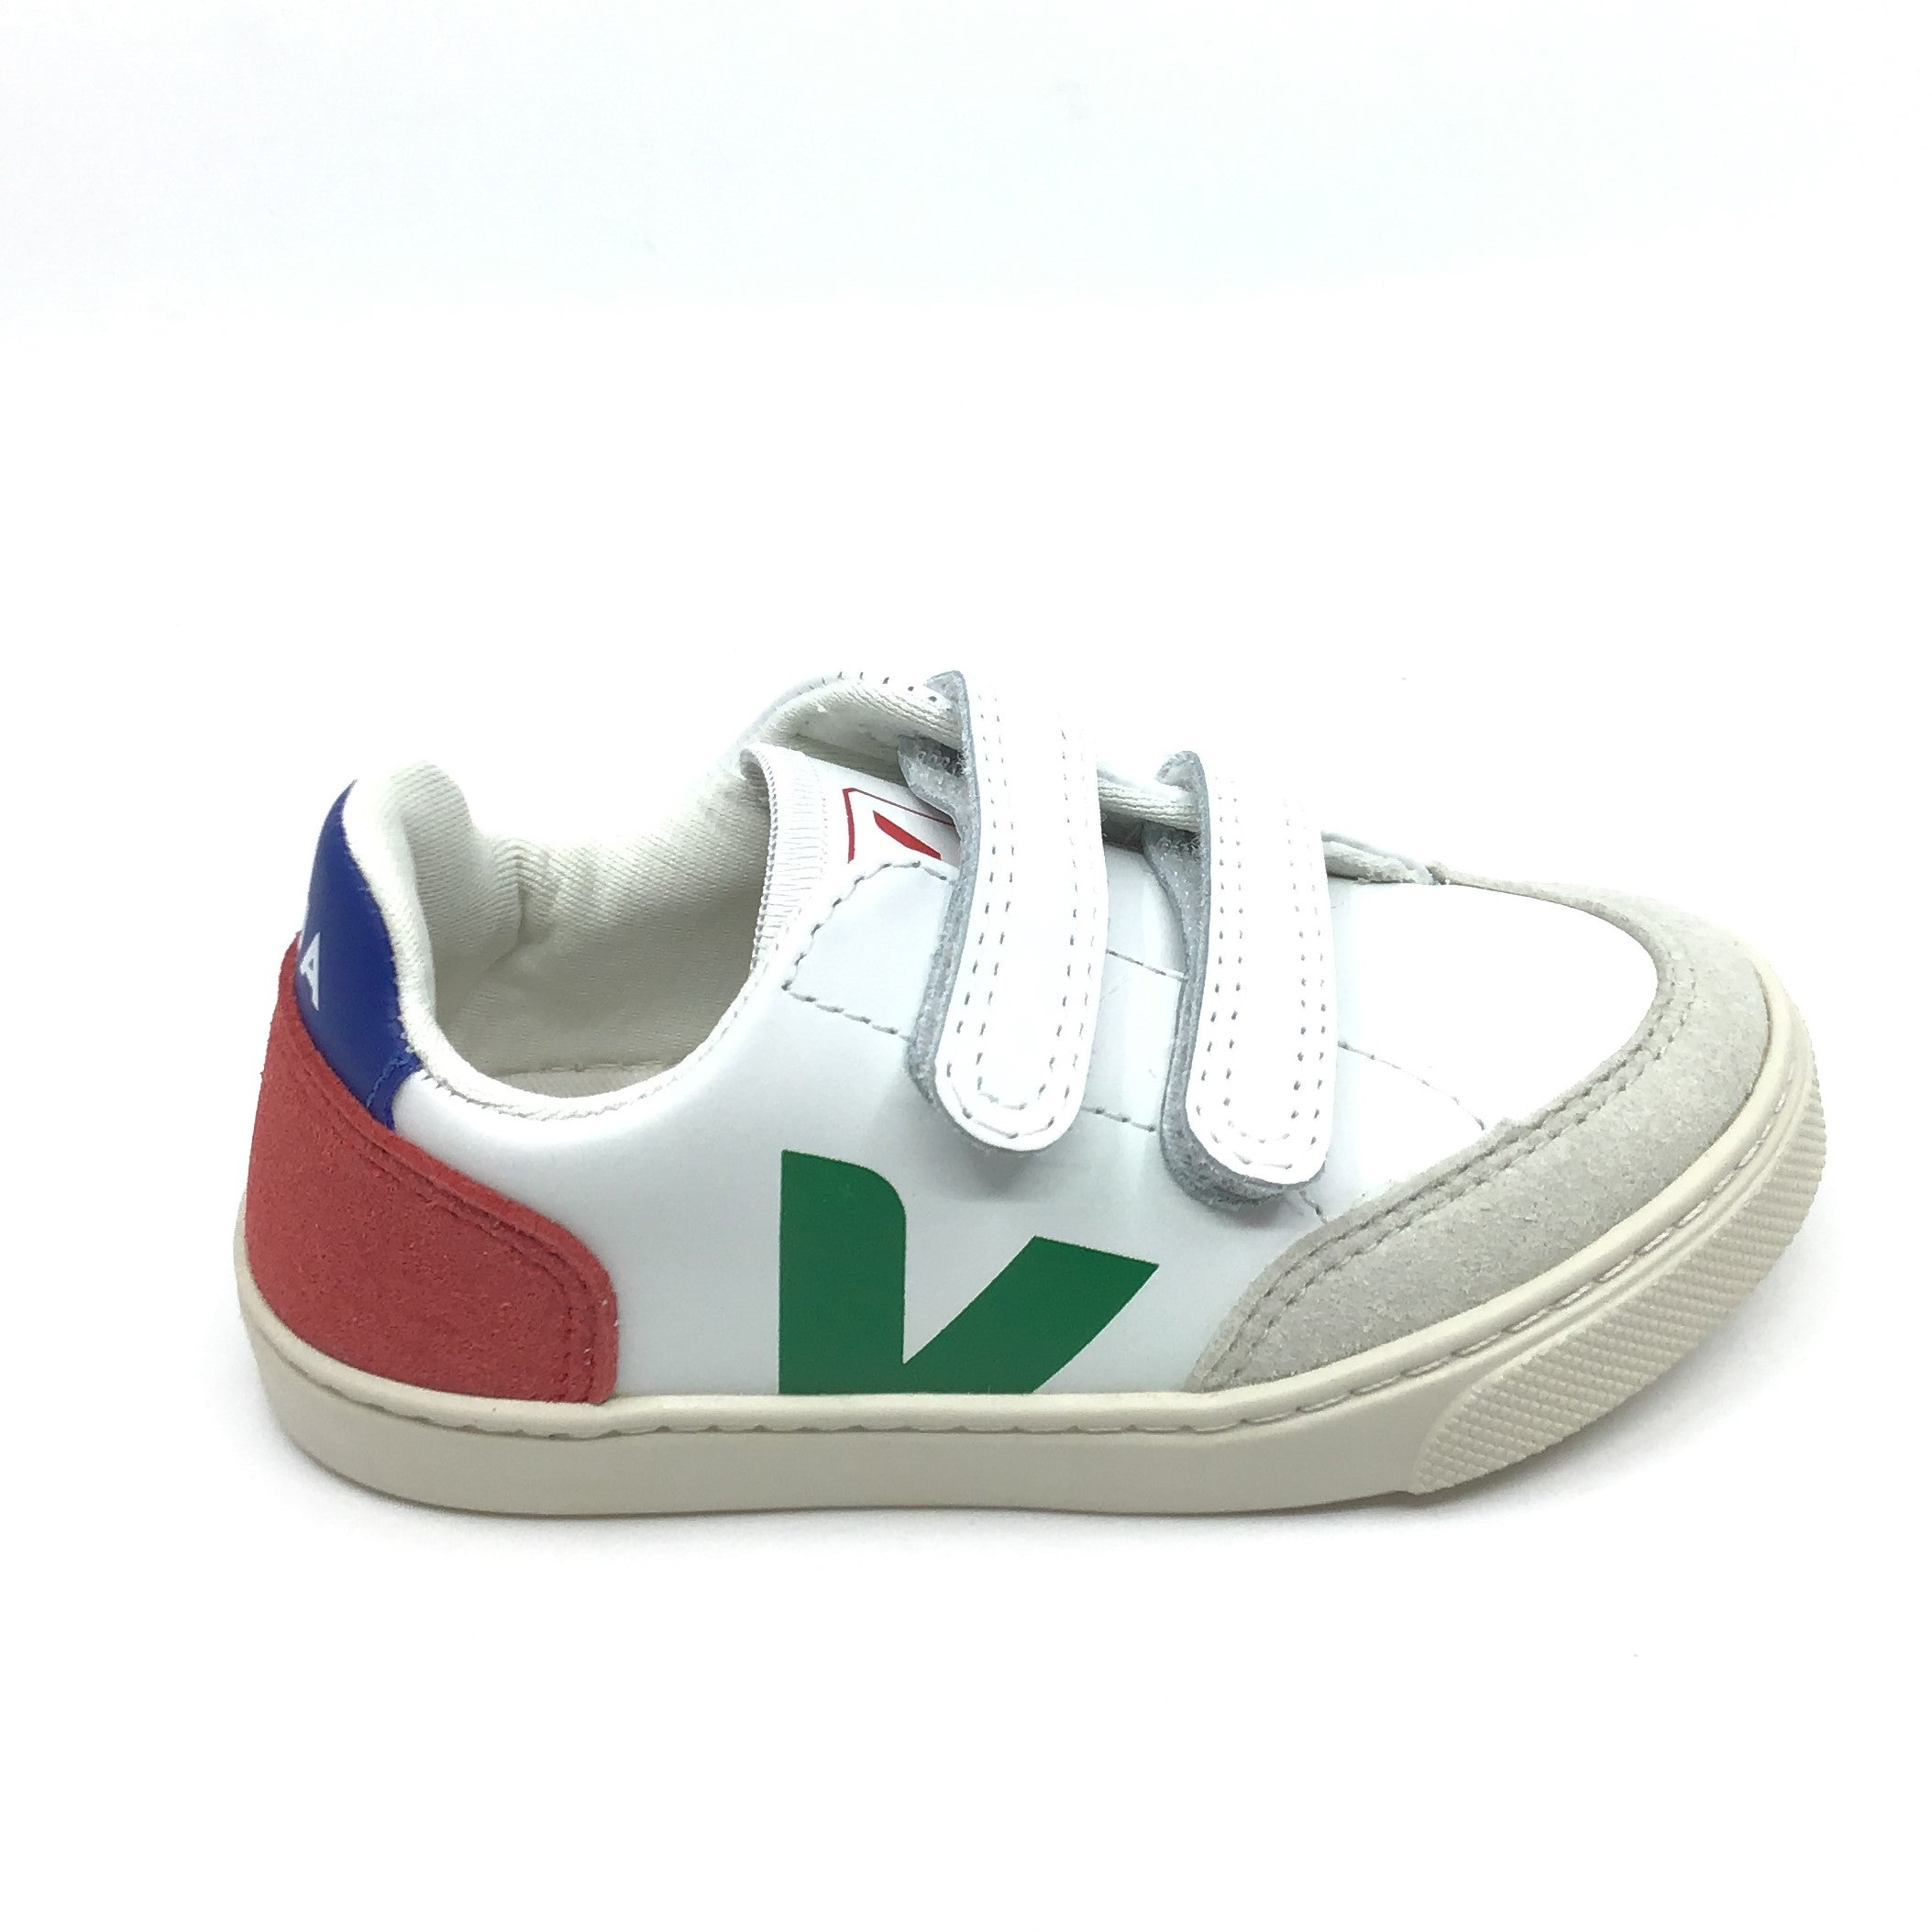 Veja White Sneaker with Dark Green V